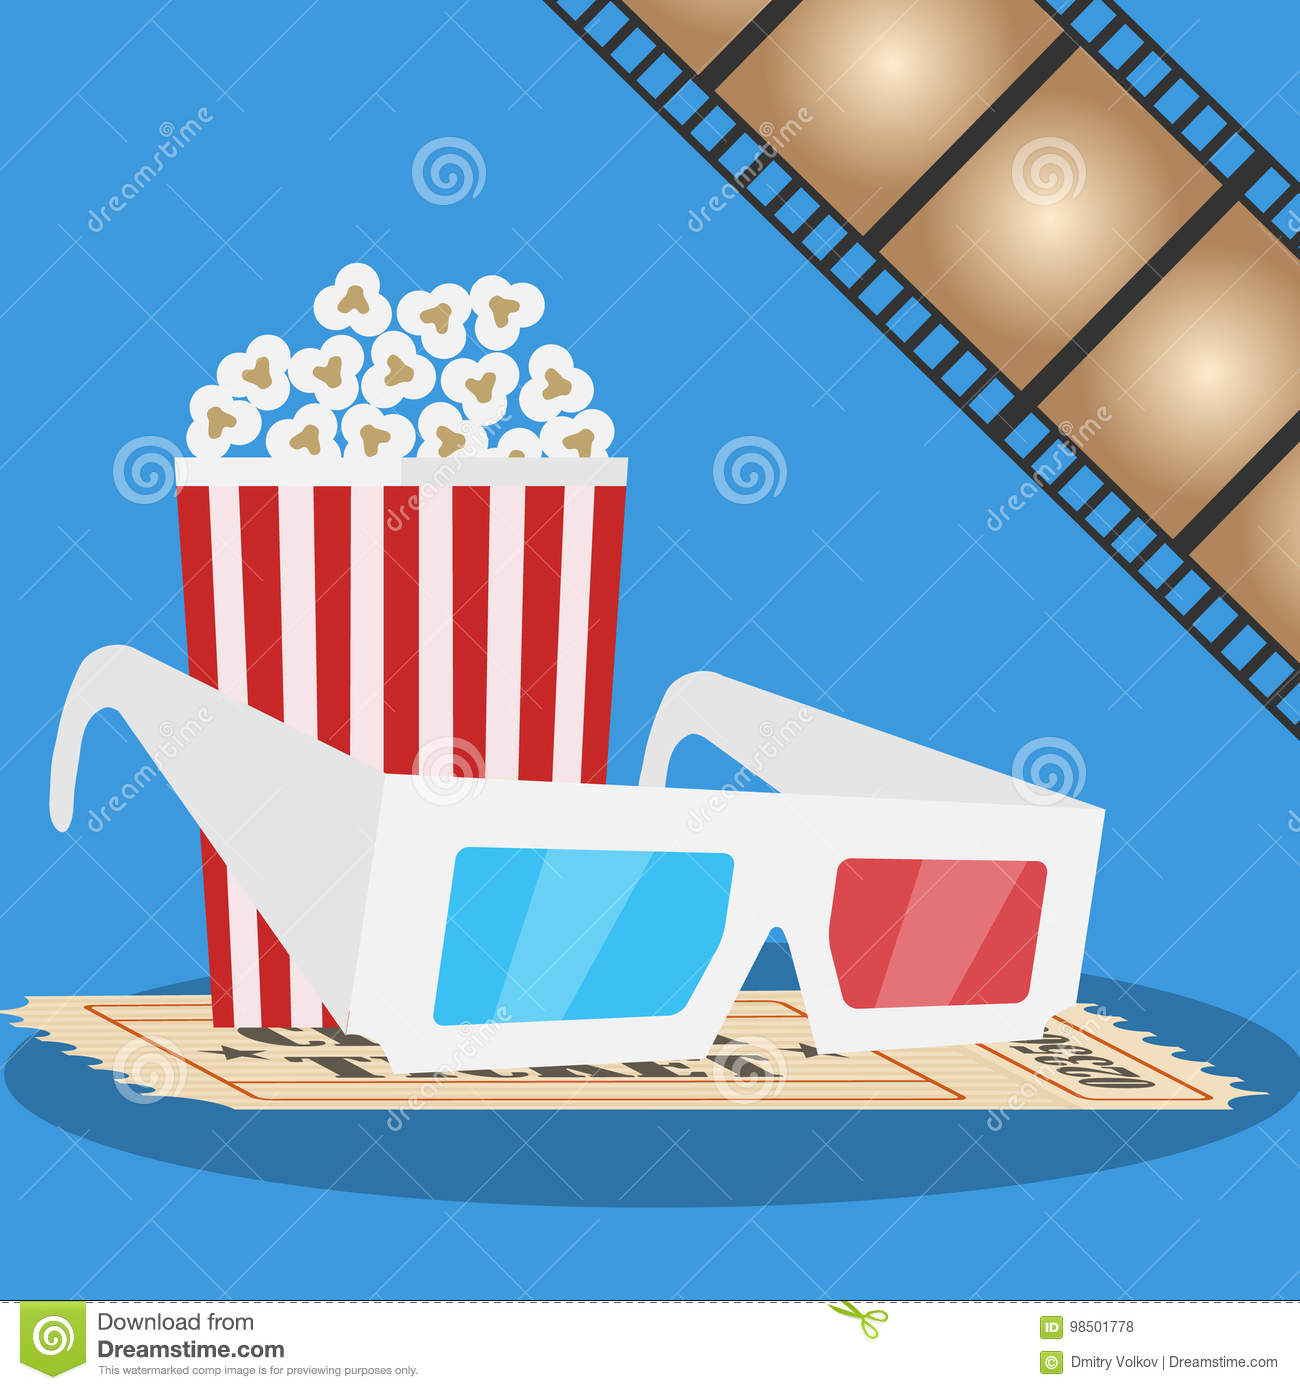 Banner movie. 3D glasses, popcorn, film. Production of the film